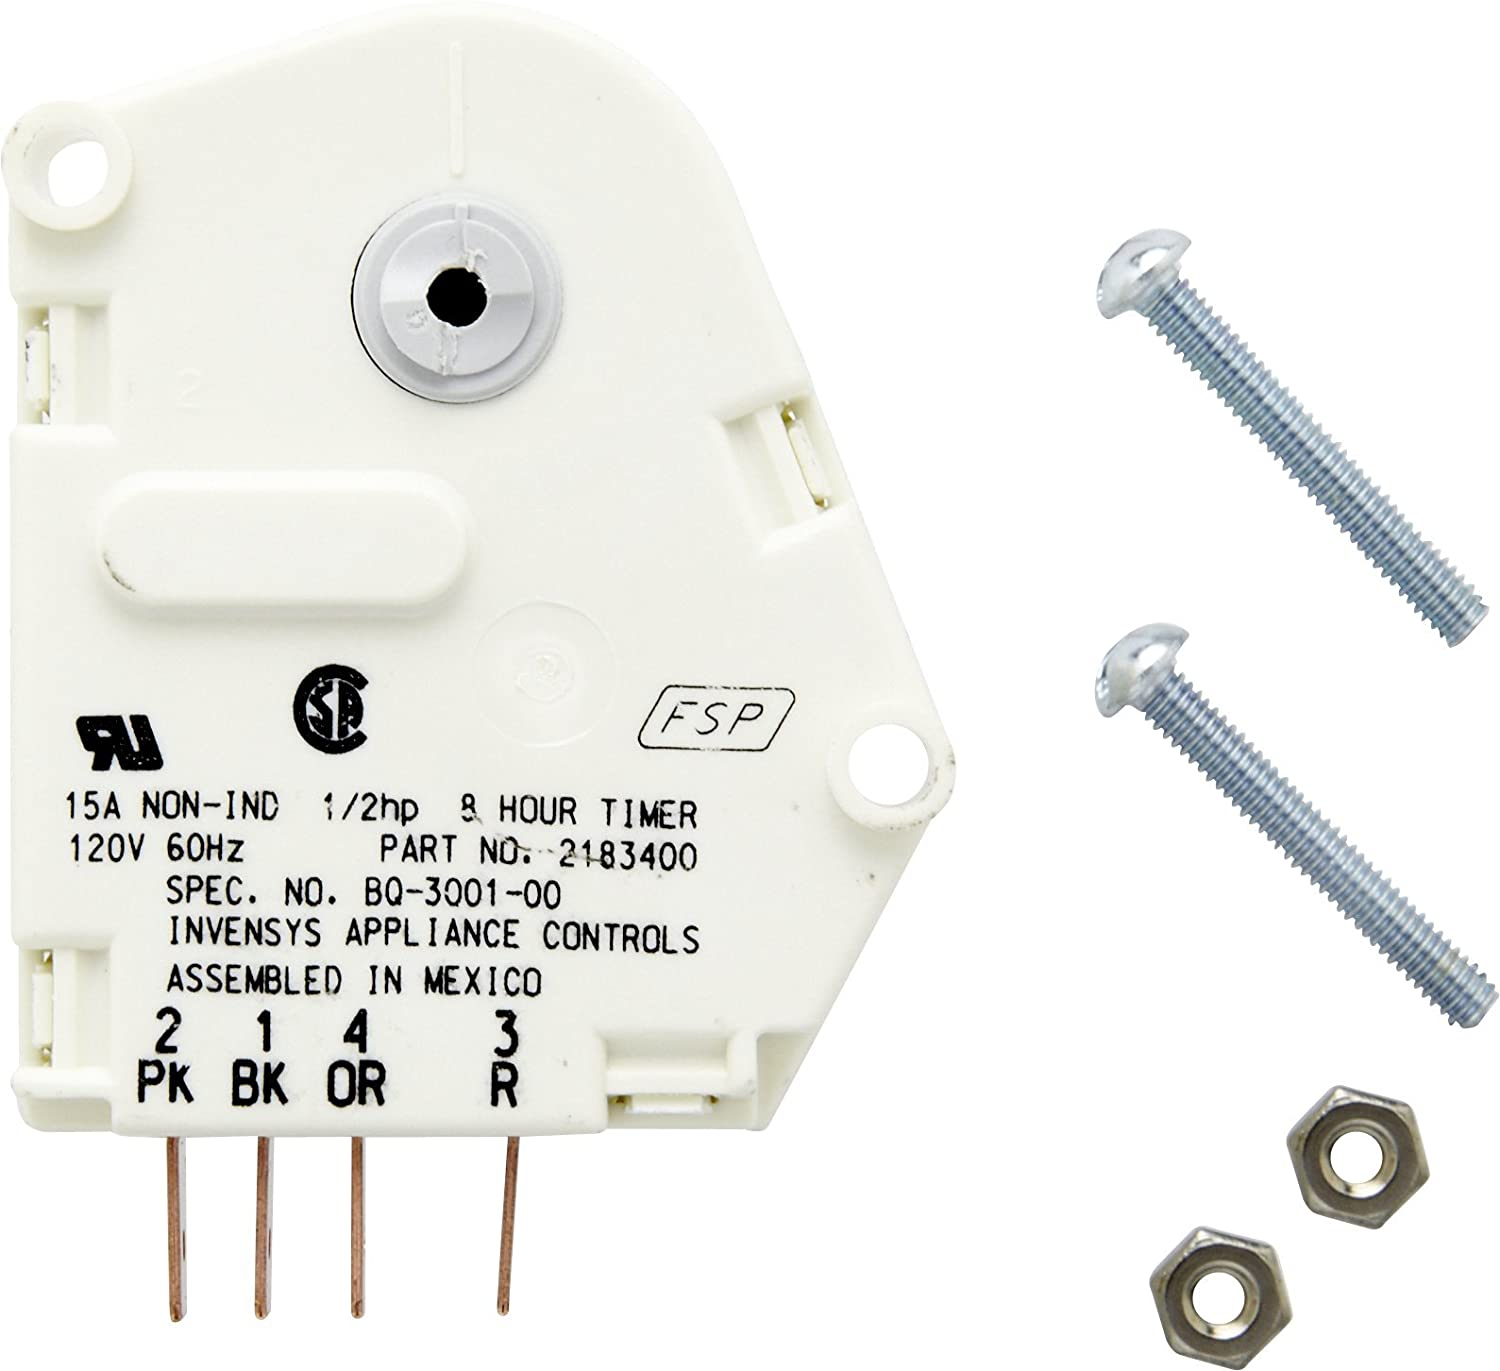 Whirlpool 2183400 Defrost Timer